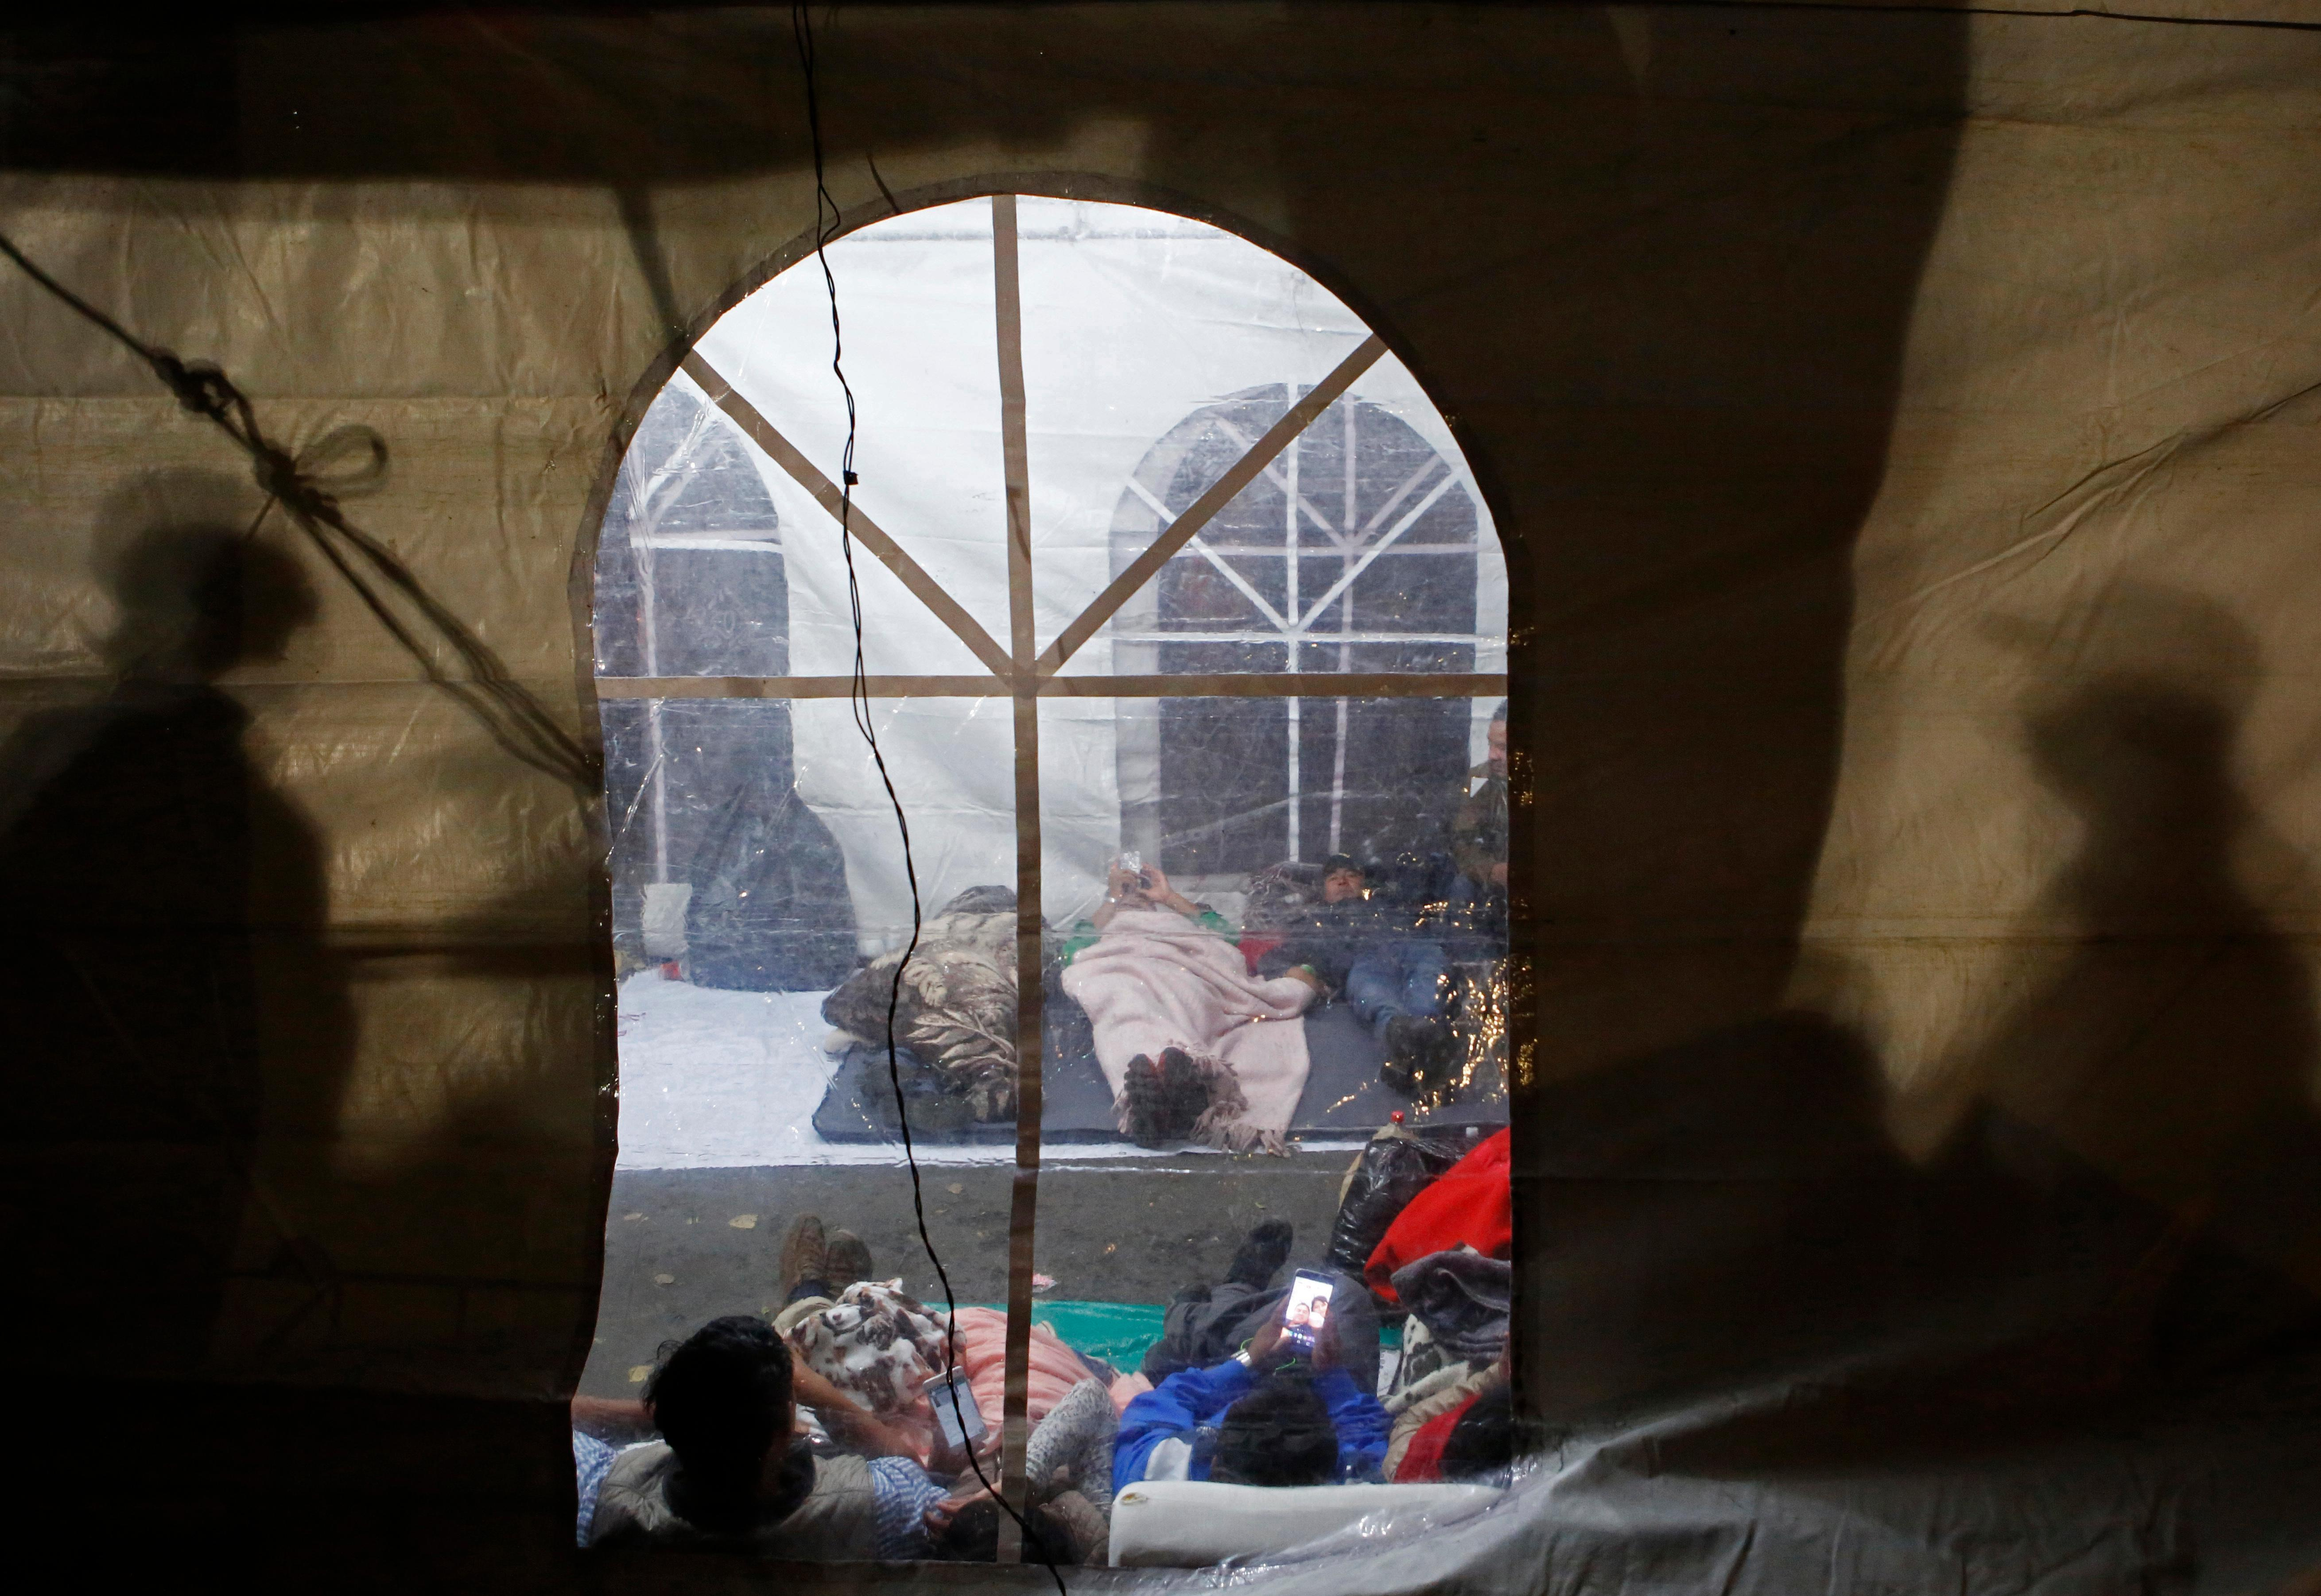 Exhausted family members of people believed to be buried inside a collapsed office building nap in a tent as rescuers continue trying to reach survivors, in the Roma Norte neighborhood of Mexico City, shortly after midnight Saturday Sept. 23, 2017.(AP Photo/Rebecca Blackwell)